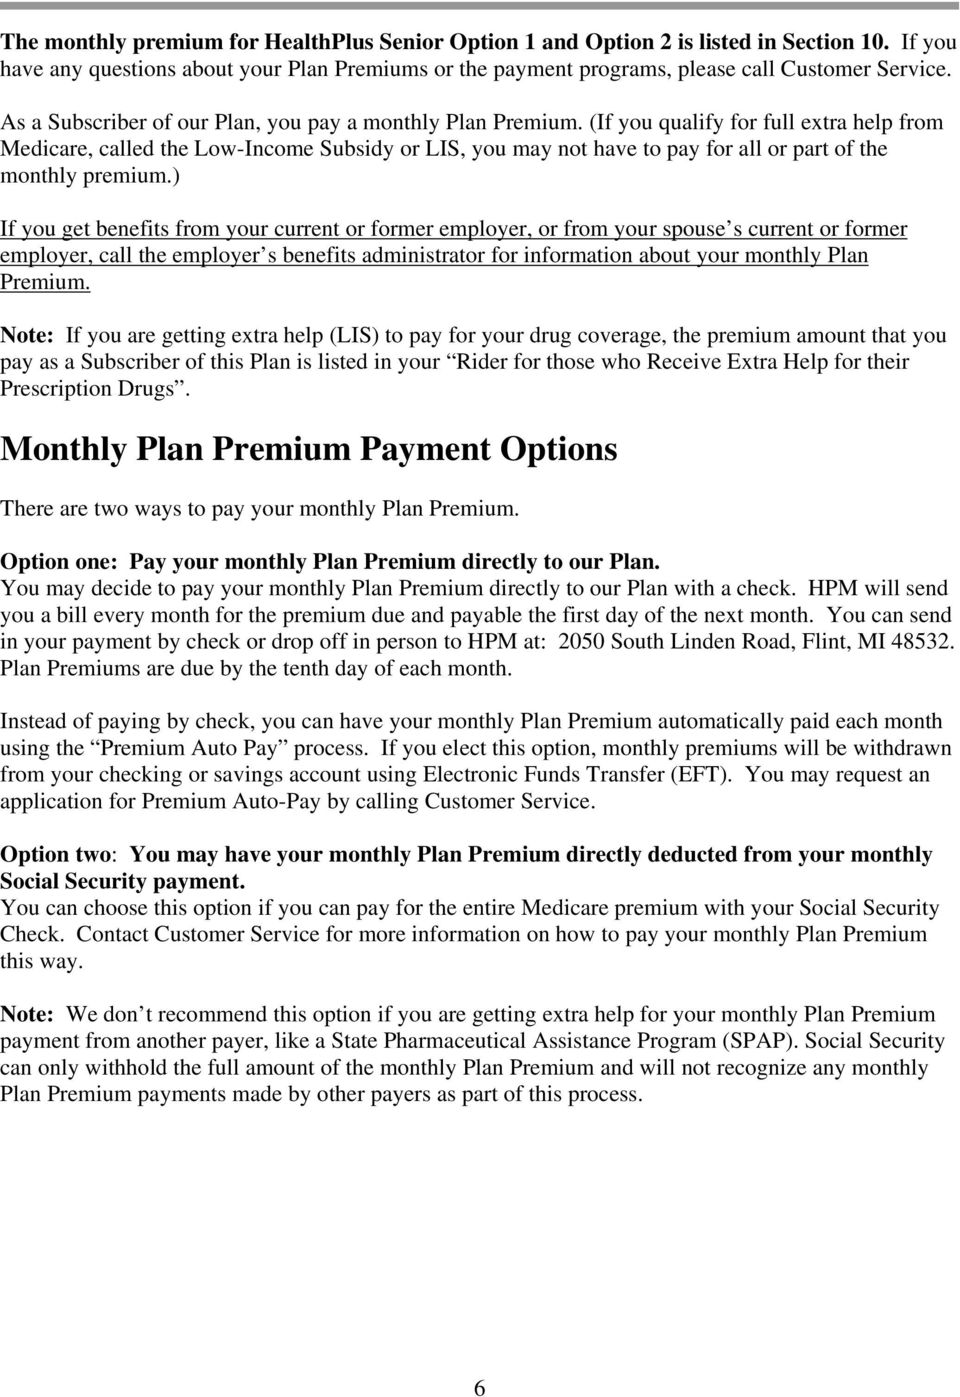 (If you qualify for full extra help from Medicare, called the Low-Income Subsidy or LIS, you may not have to pay for all or part of the monthly premium.